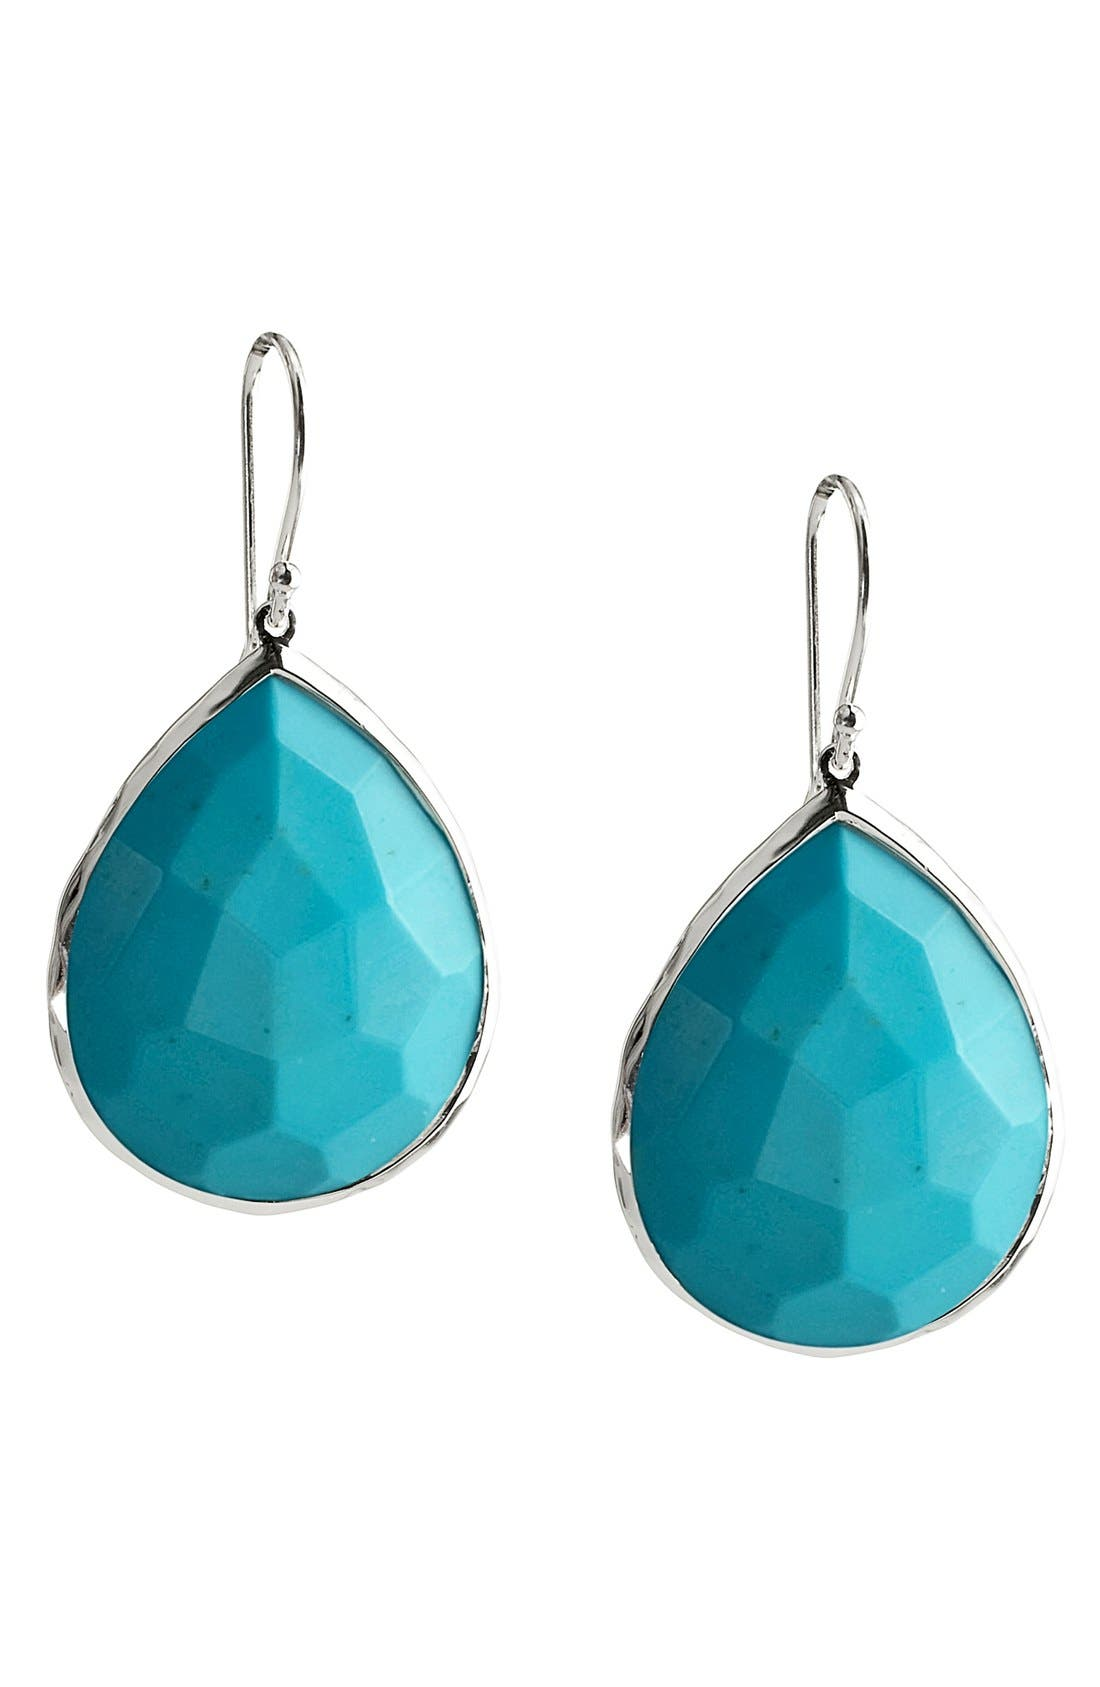 Alternate Image 1 Selected - Ippolita 'Wonderland - Rainbow' Large Teardrop Earrings